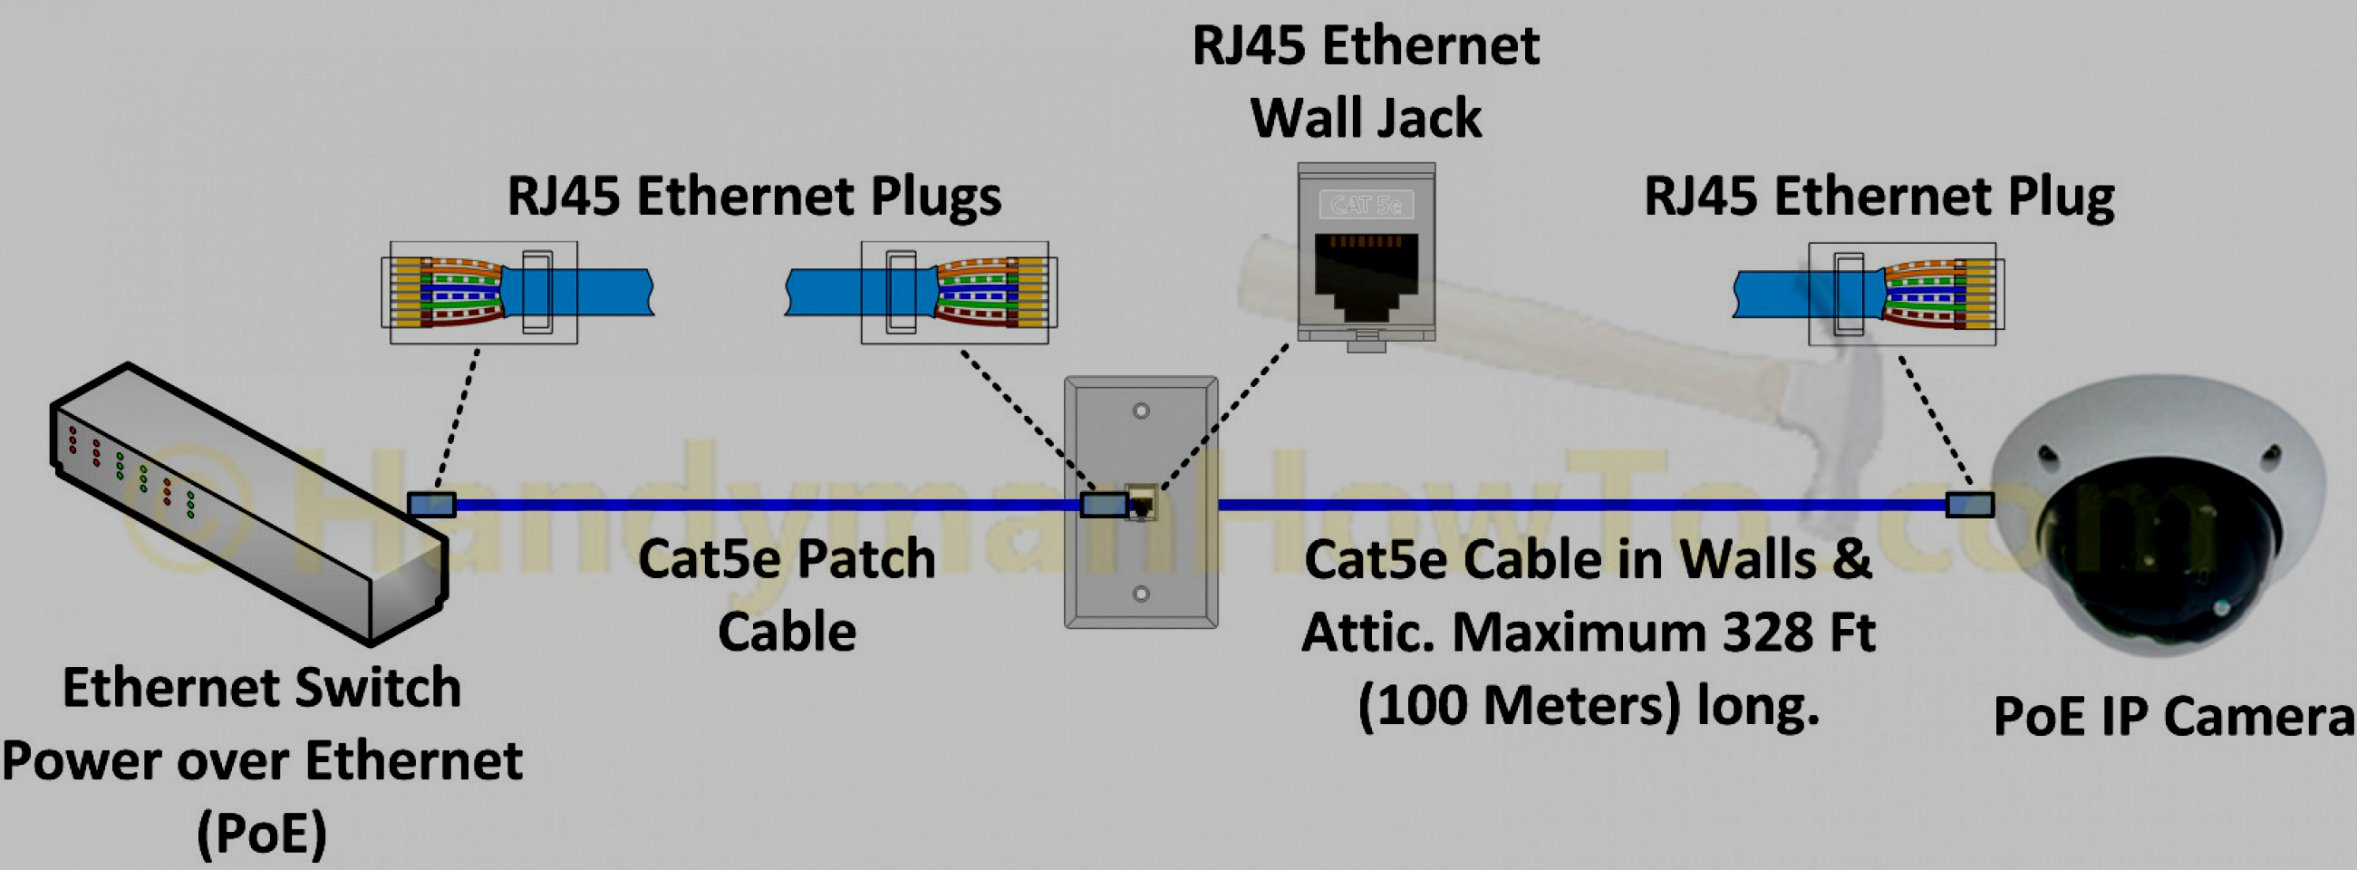 cat 5 patch cable wiring diagram simple guide about wiring autocad house wiring diagram ford 3 0 engine diagrams another blog